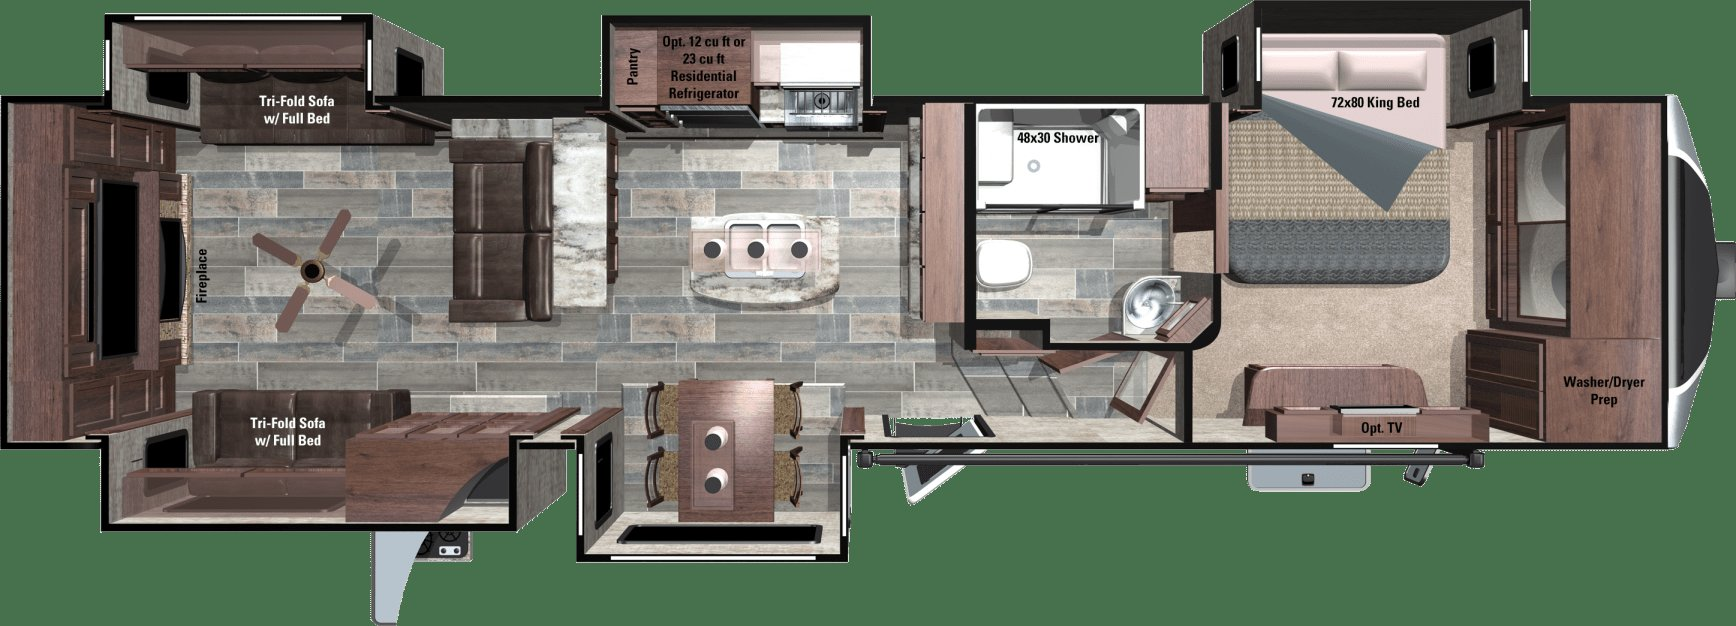 Best 2018 Open Range 3X Fifth Wheels By Highland Ridge Rv With Pictures